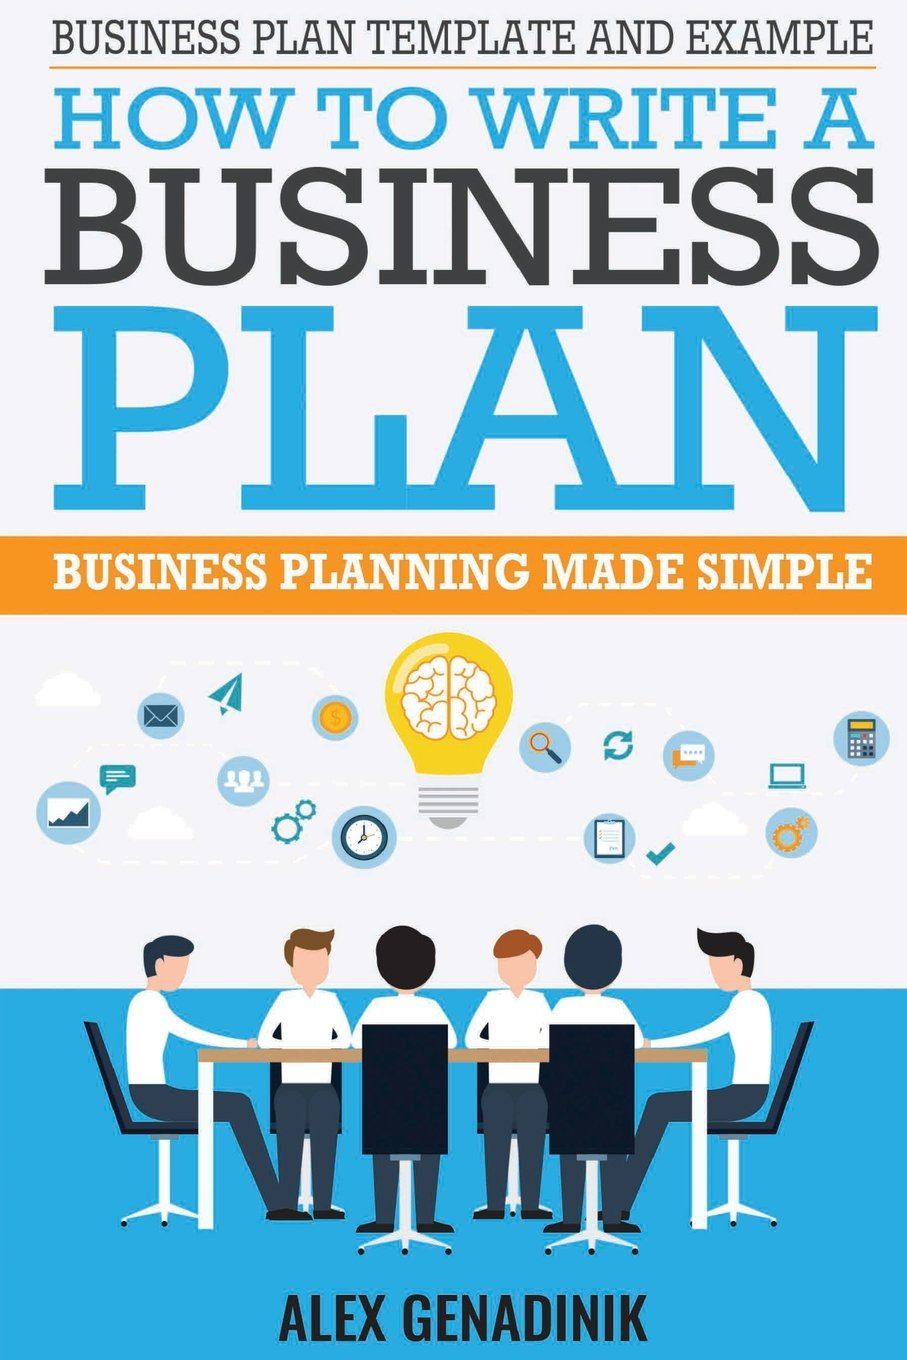 Business plan template and example how to write a business plan business plan template and example how to write a business plan business planning made simple alex genadinik 9781519741783 amazon books cheaphphosting